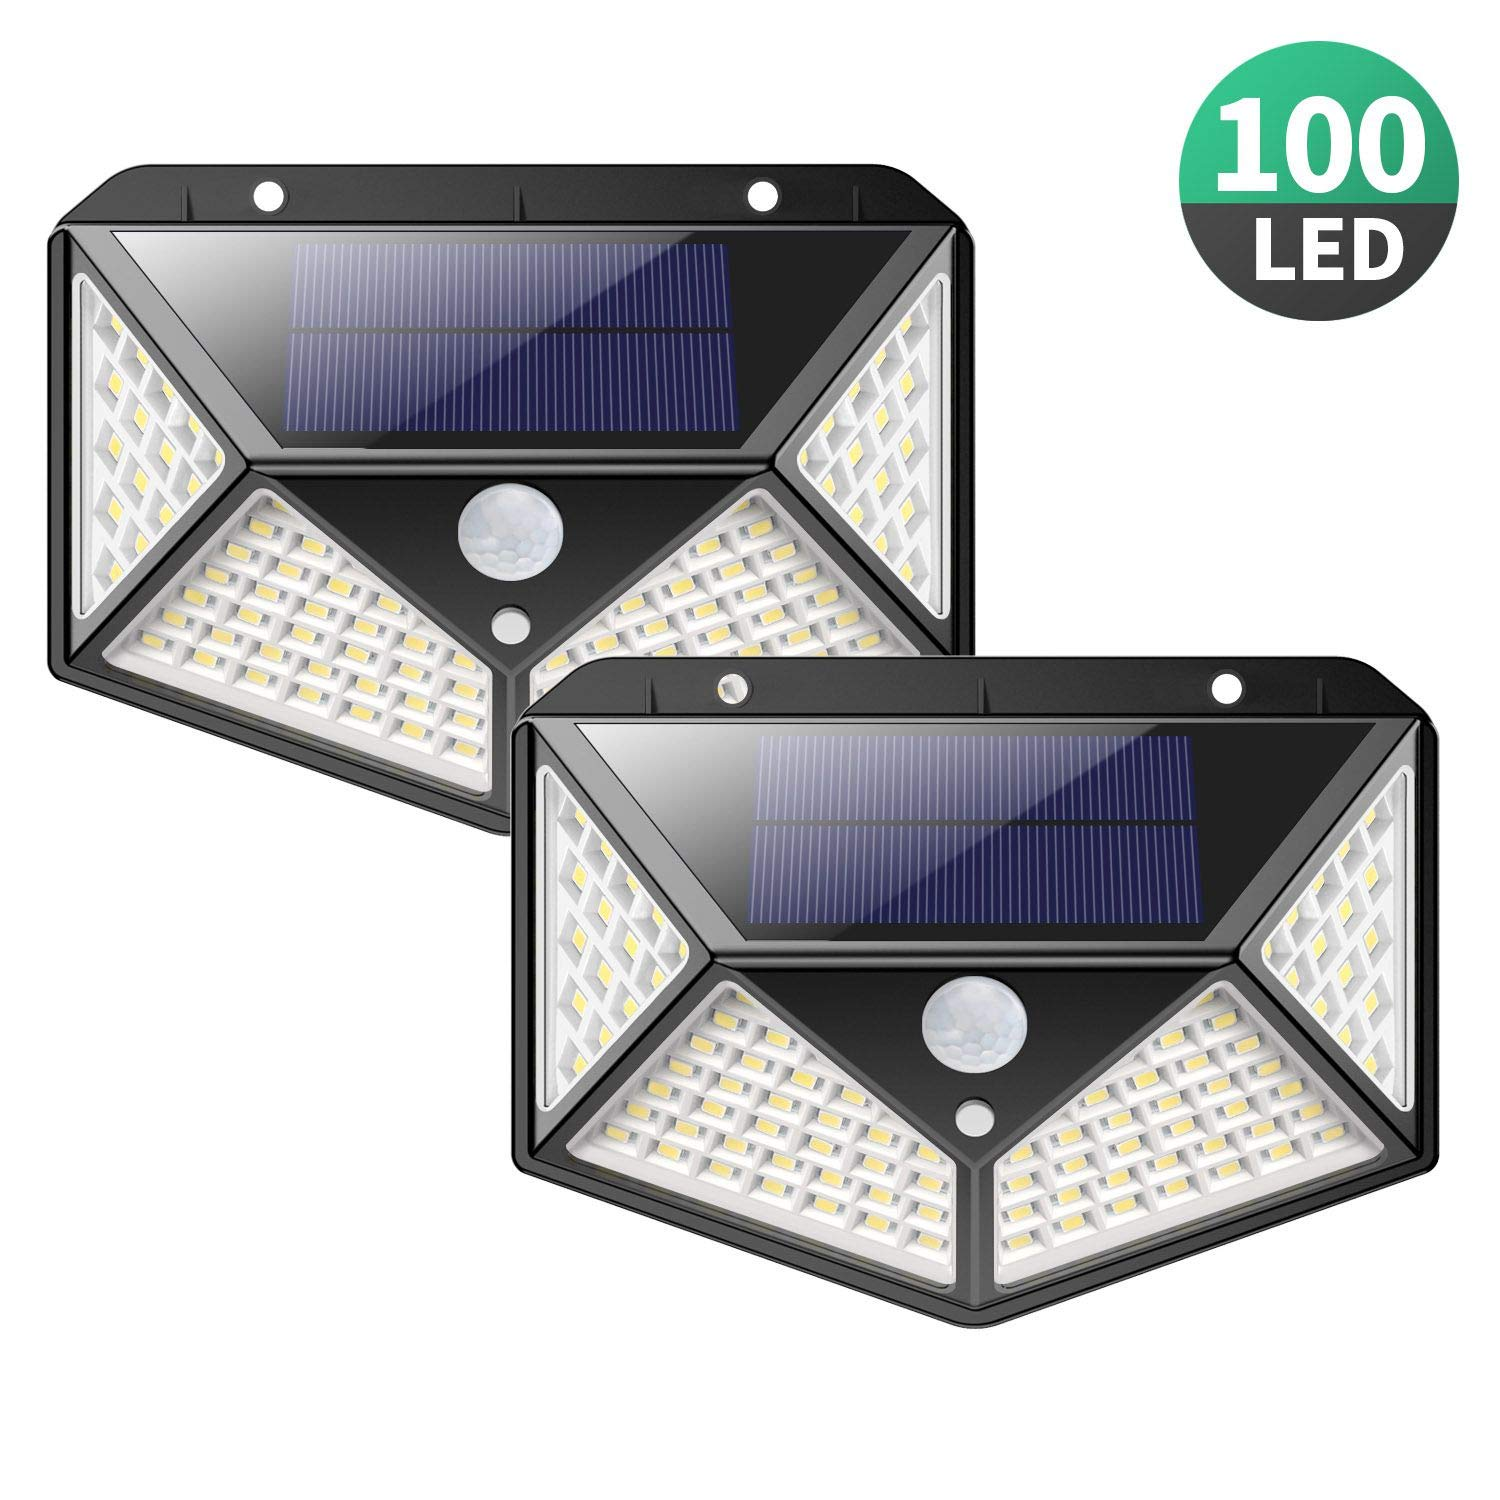 Solar Lights Outdoor [100 LEDs],Yacikos IP65 Waterproof Wireless Motion Sensor Lights,270°Wide Angle,Easy-to-Install Security Wall Lights with 3 Modes for Yard,Stairs,Garage,Fence,Porch(2 Pack) by Yacikos